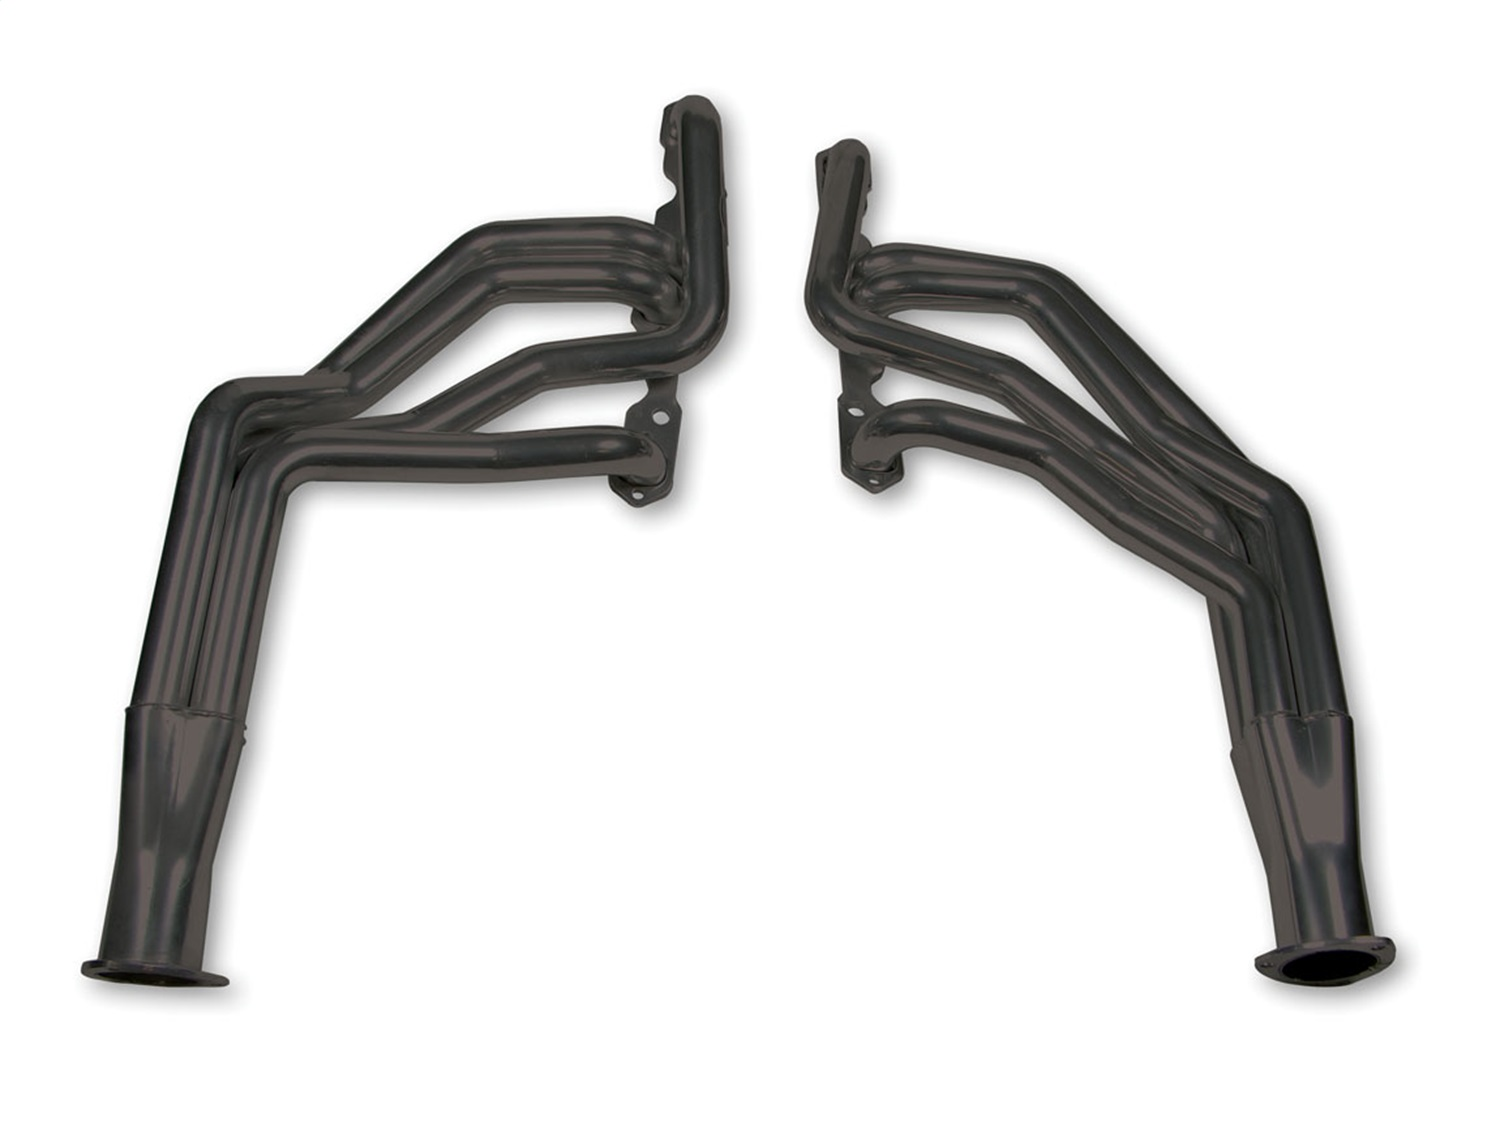 Hooker Headers 2243HKR Super Competition Long Tube Header Fits 63-67 Chevy II